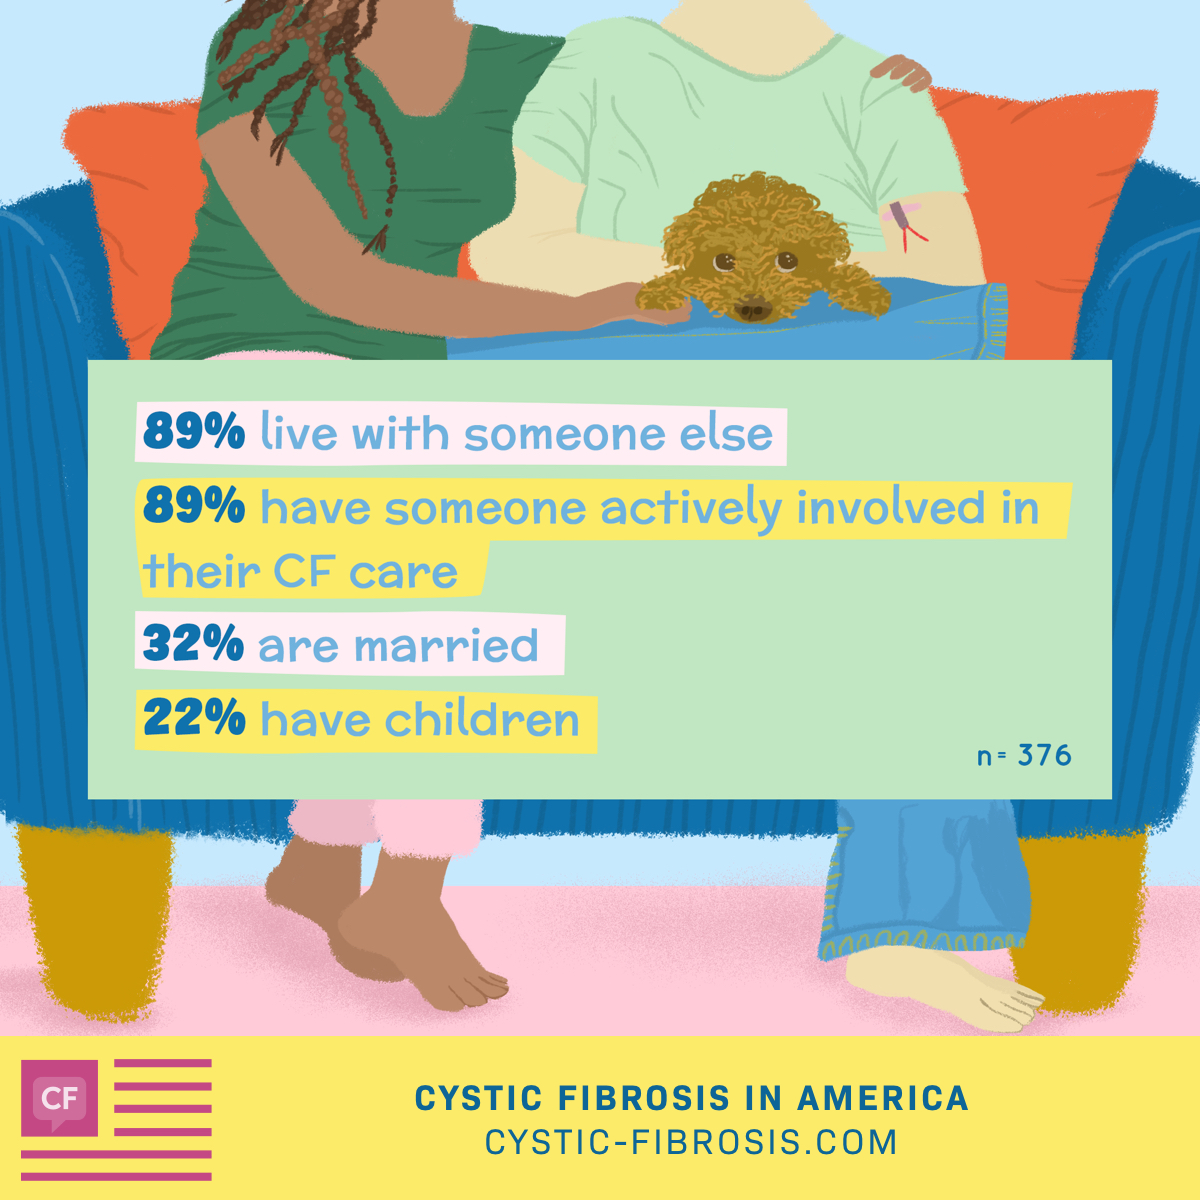 89 percent of patients live with someone else, 89 percent have someone actively involved in their CF care, 31 percent are married, and 22 percent have children.